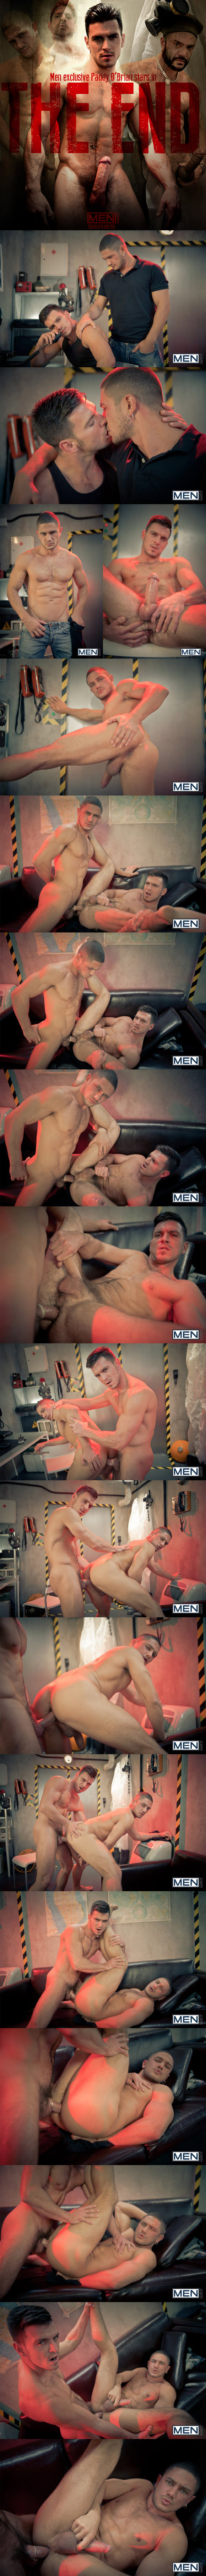 drillmyhole-the-end-dato-foland-paddy-obrian